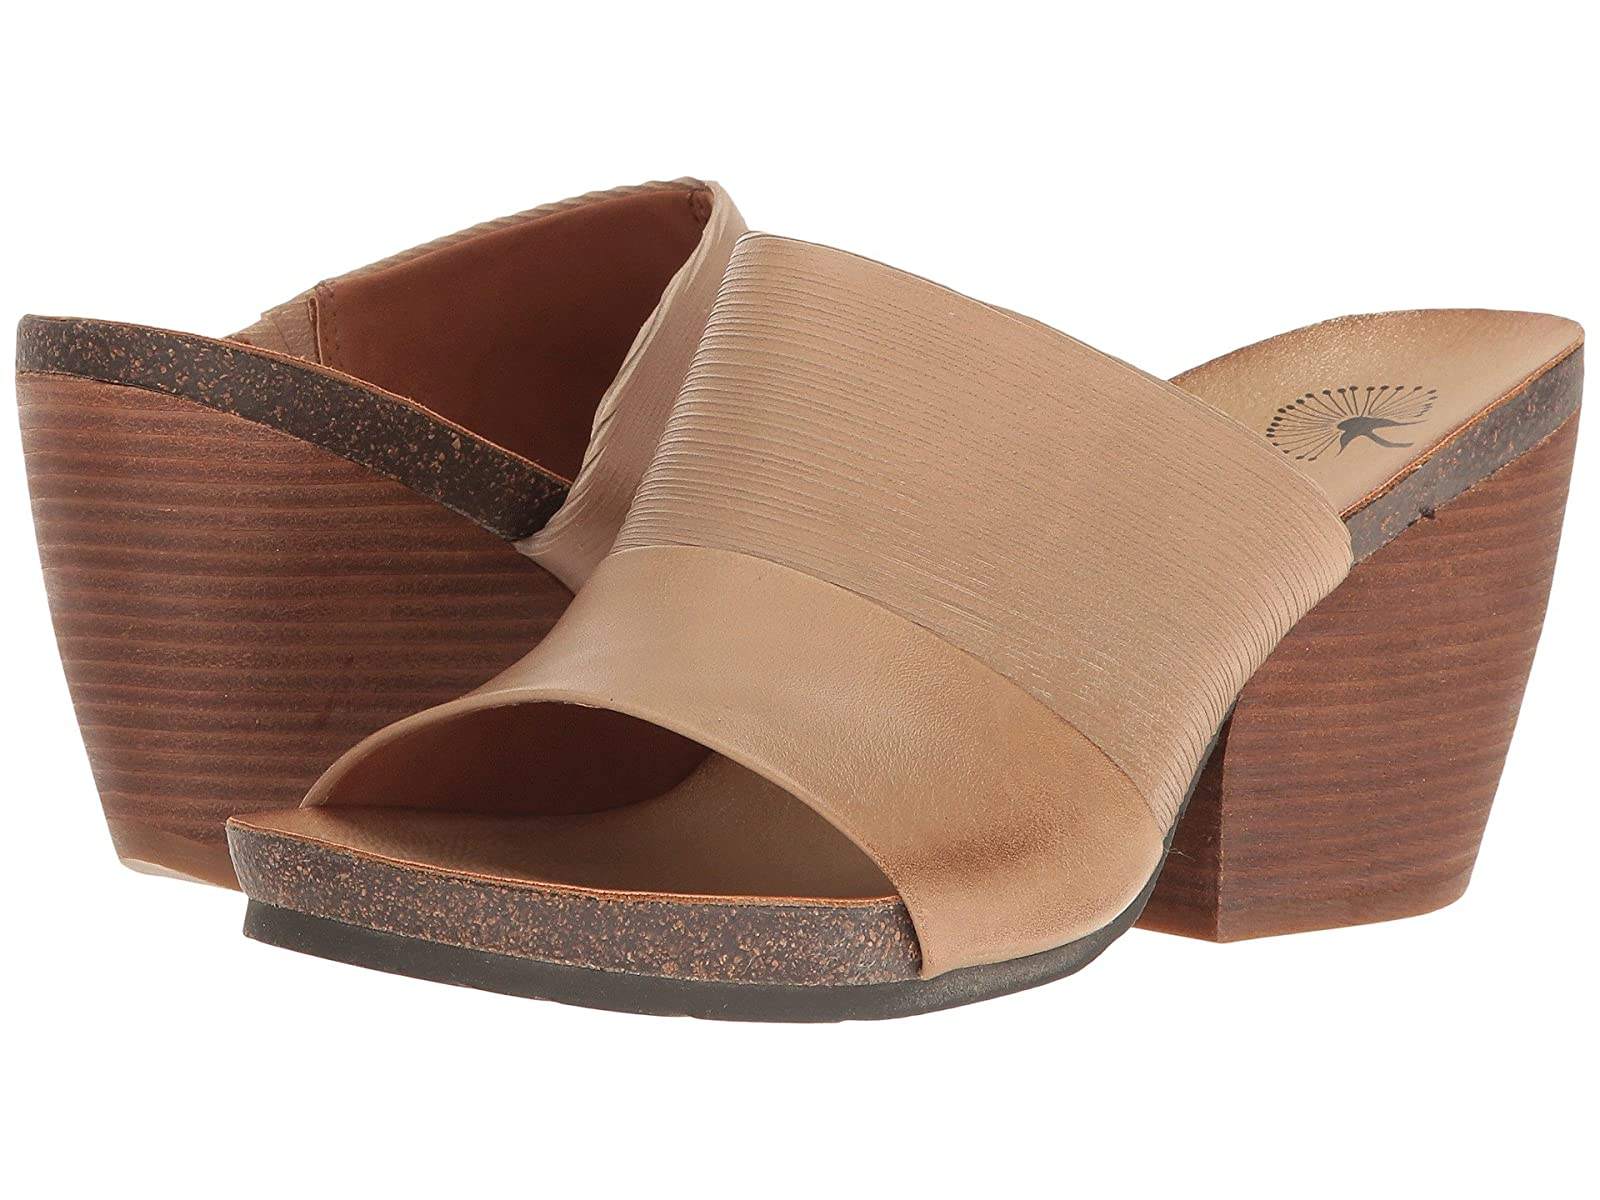 OTBT HostelCheap and distinctive eye-catching shoes